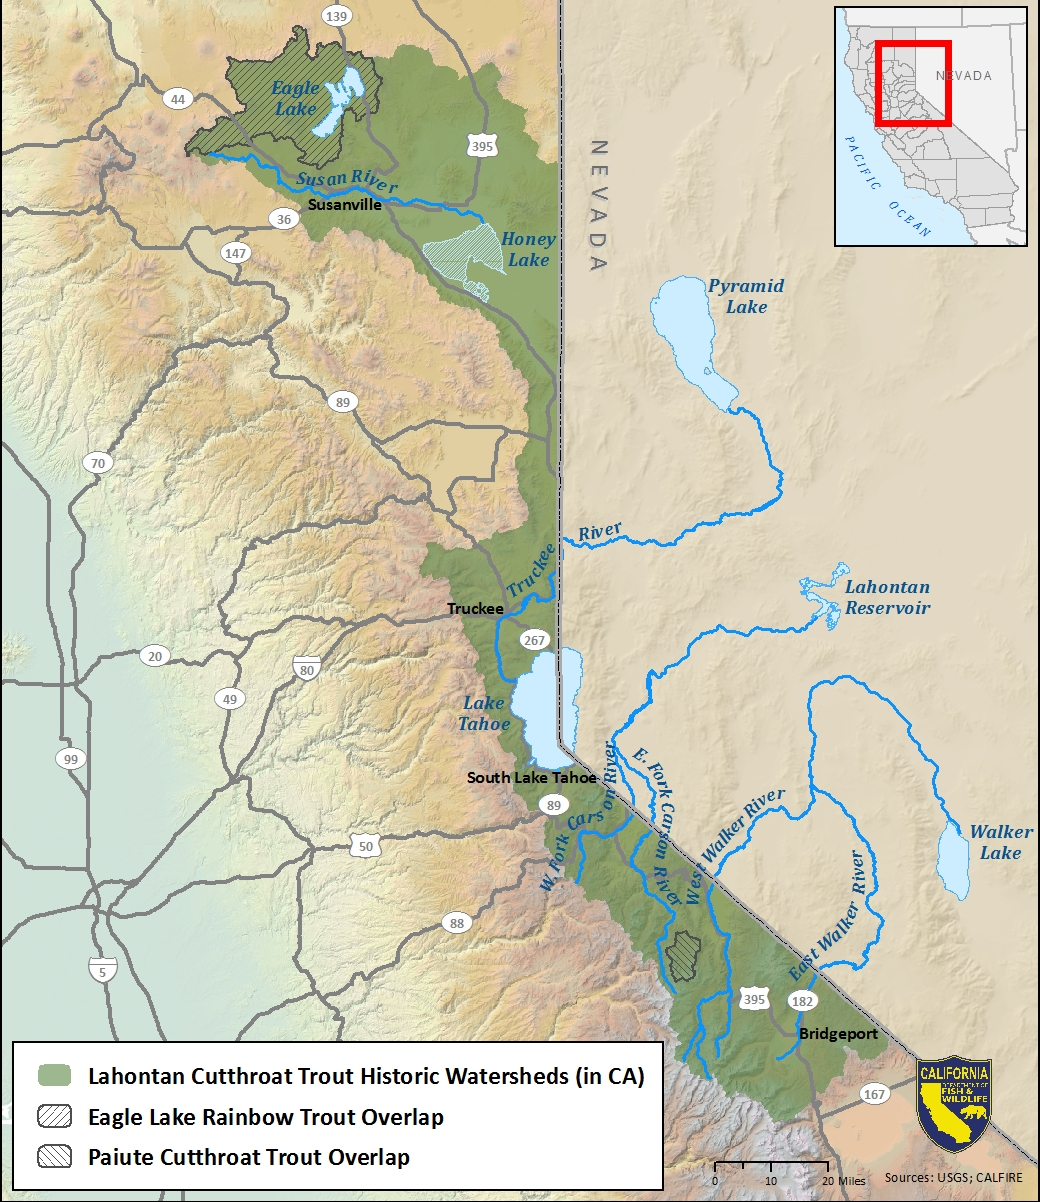 Map of Lahontan cutthroat trout historic watersheds  - click to enlarge in new window